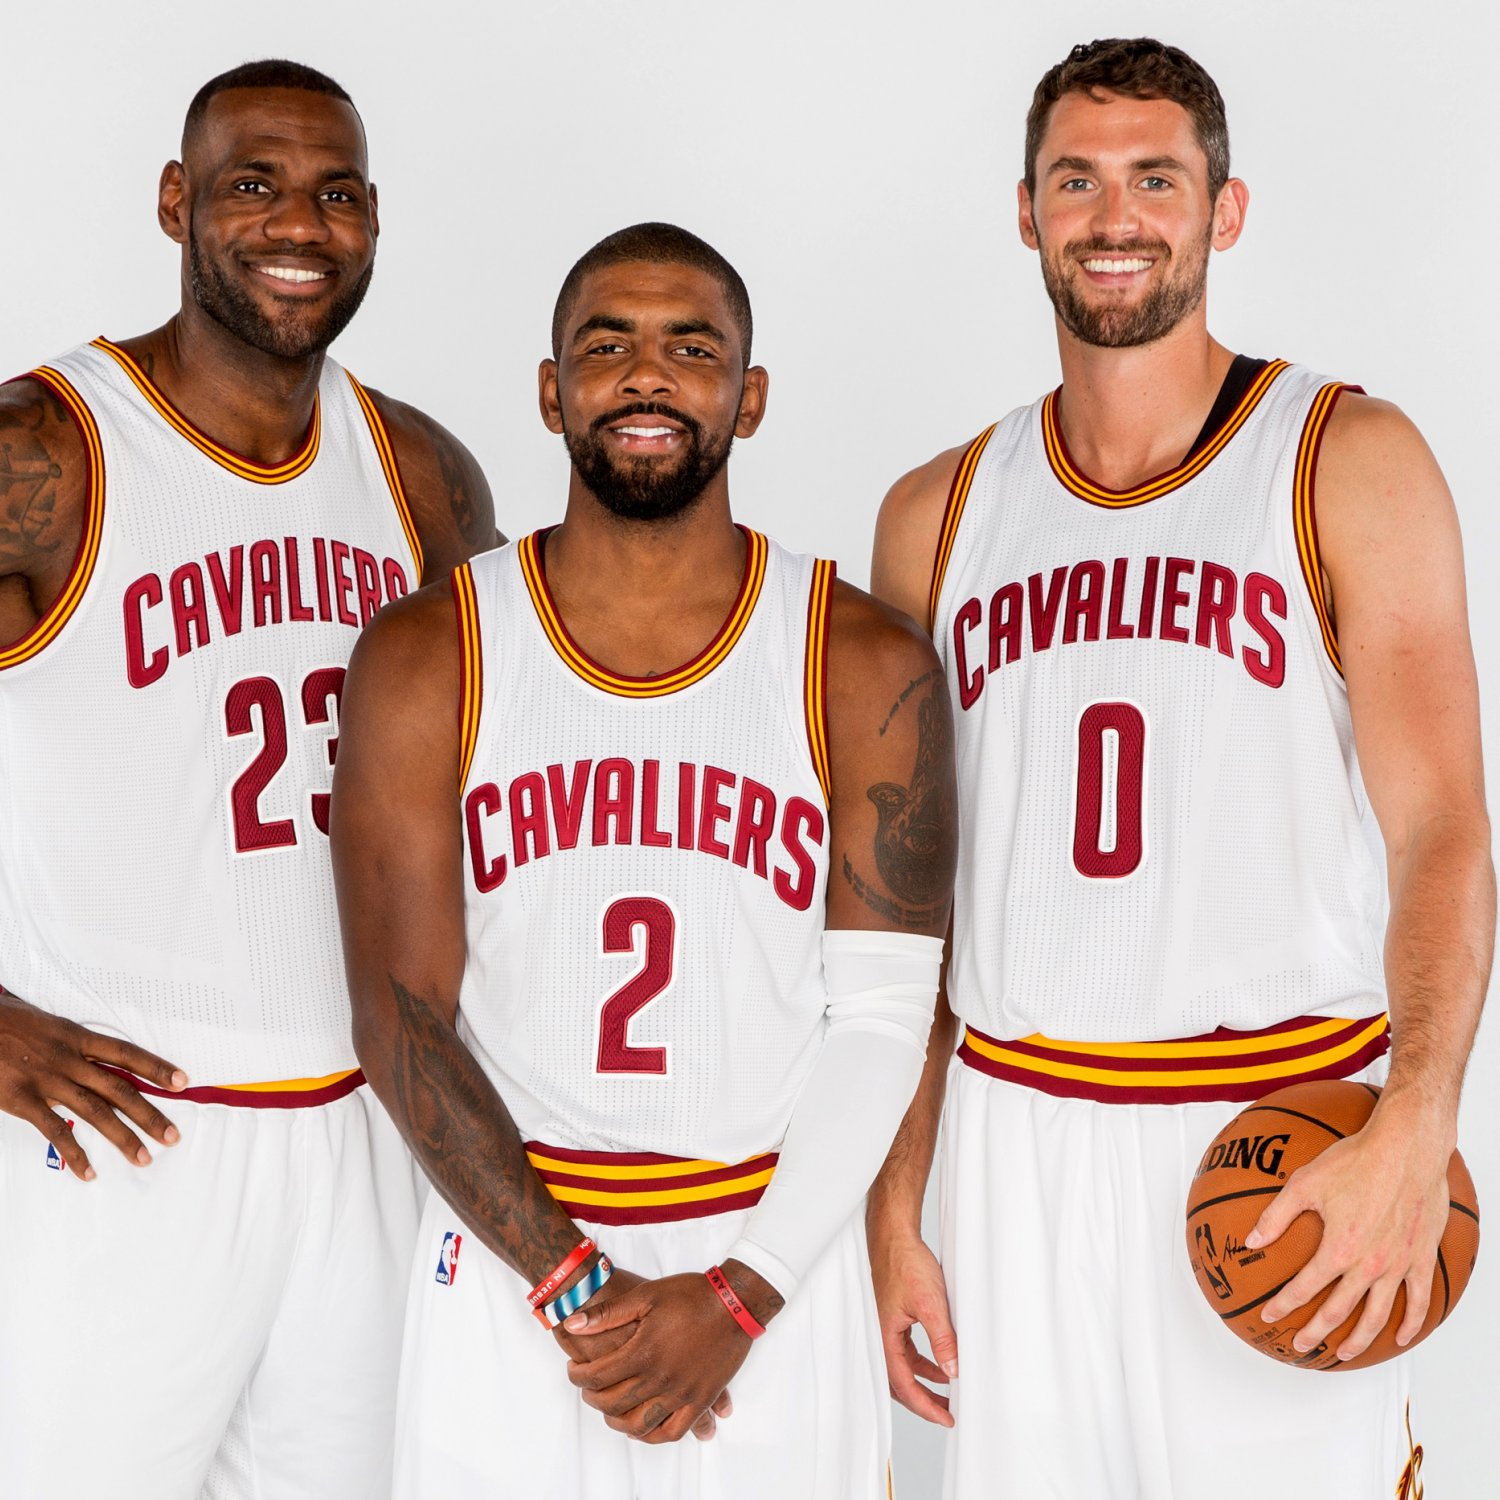 ... Cavaliers 2016-17 NBA Training Camp Roster Rankings | Bleacher Report